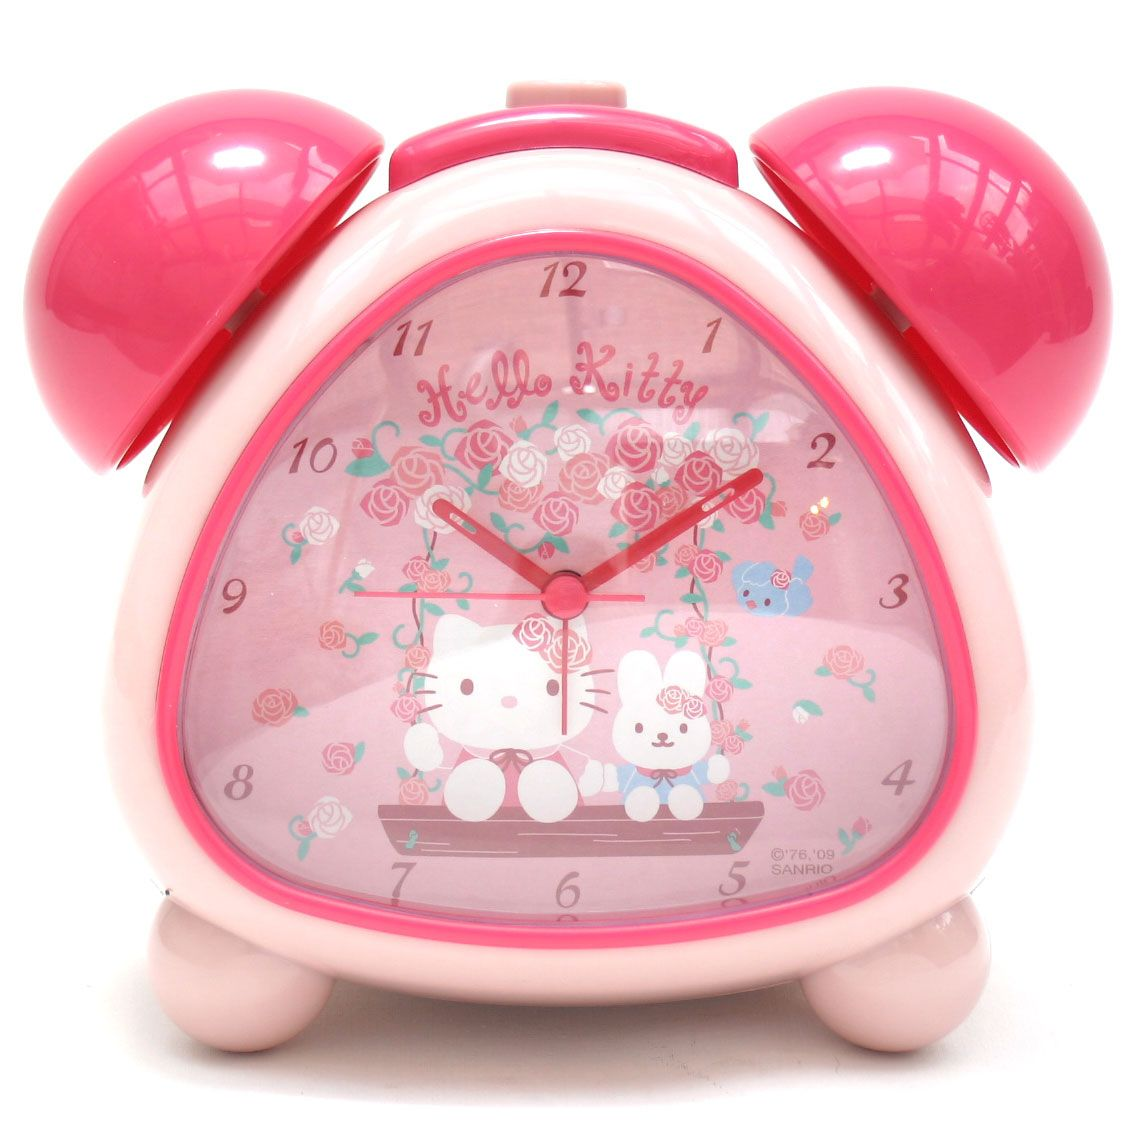 42c084970 Hello Kitty Alarm Clock - Swing Kitty #hellokitty #hellokittyuk #kawaii  #dizzypink #hellokittycollection #hellokittyaddict #hellokittystuff #clock  ...